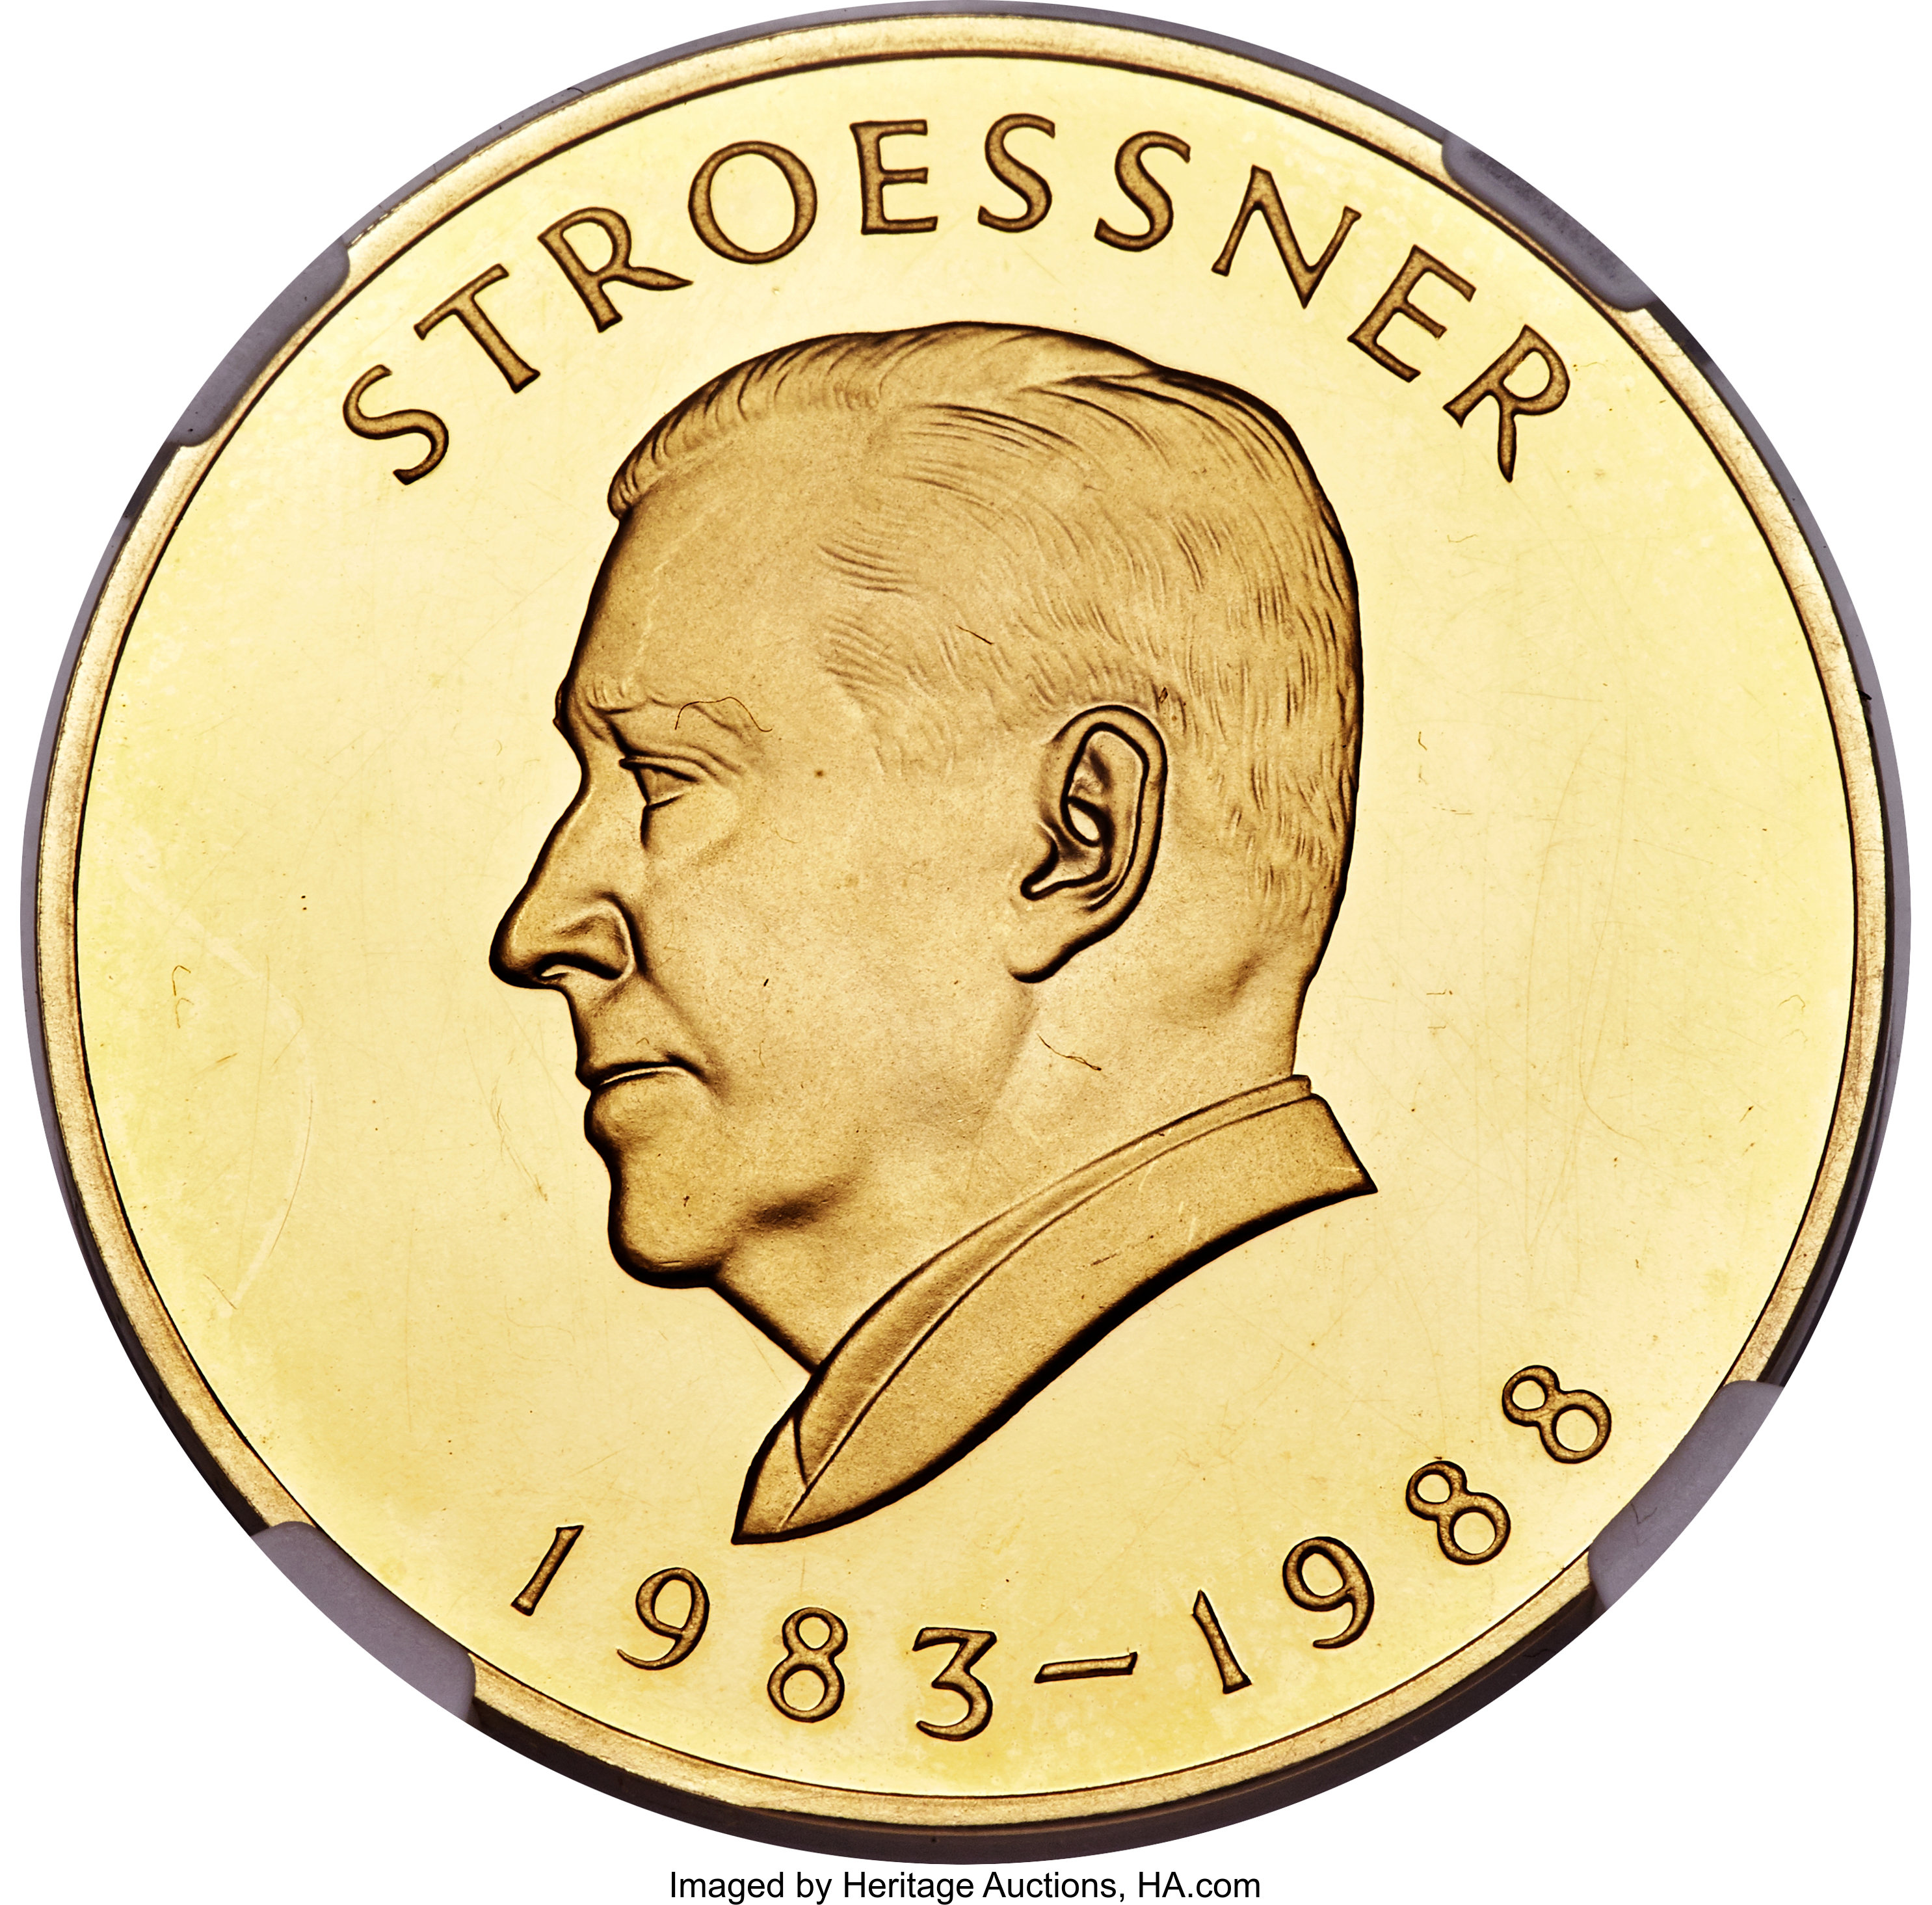 Paraguay Republic Gold Proof Stroessner 100000 Guaranies Nd Lot 31639 Heritage Auctions